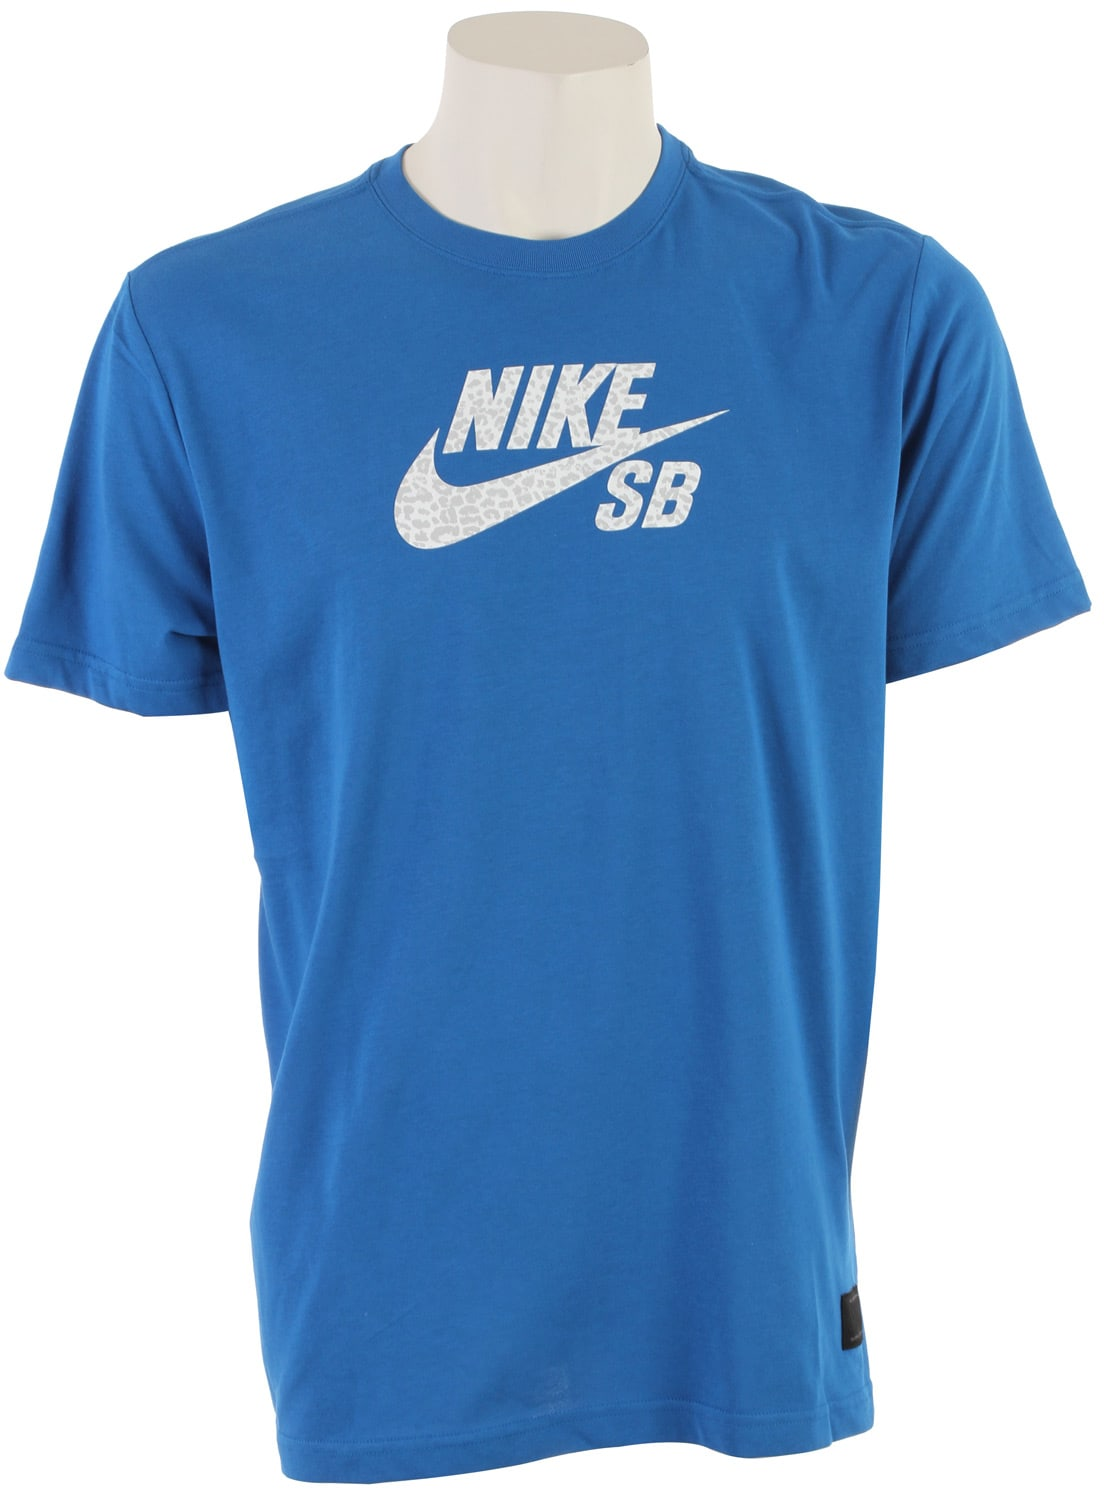 On sale nike sb dri fit icon leopard t shirt up to 55 off for Cheap nike sb shirts